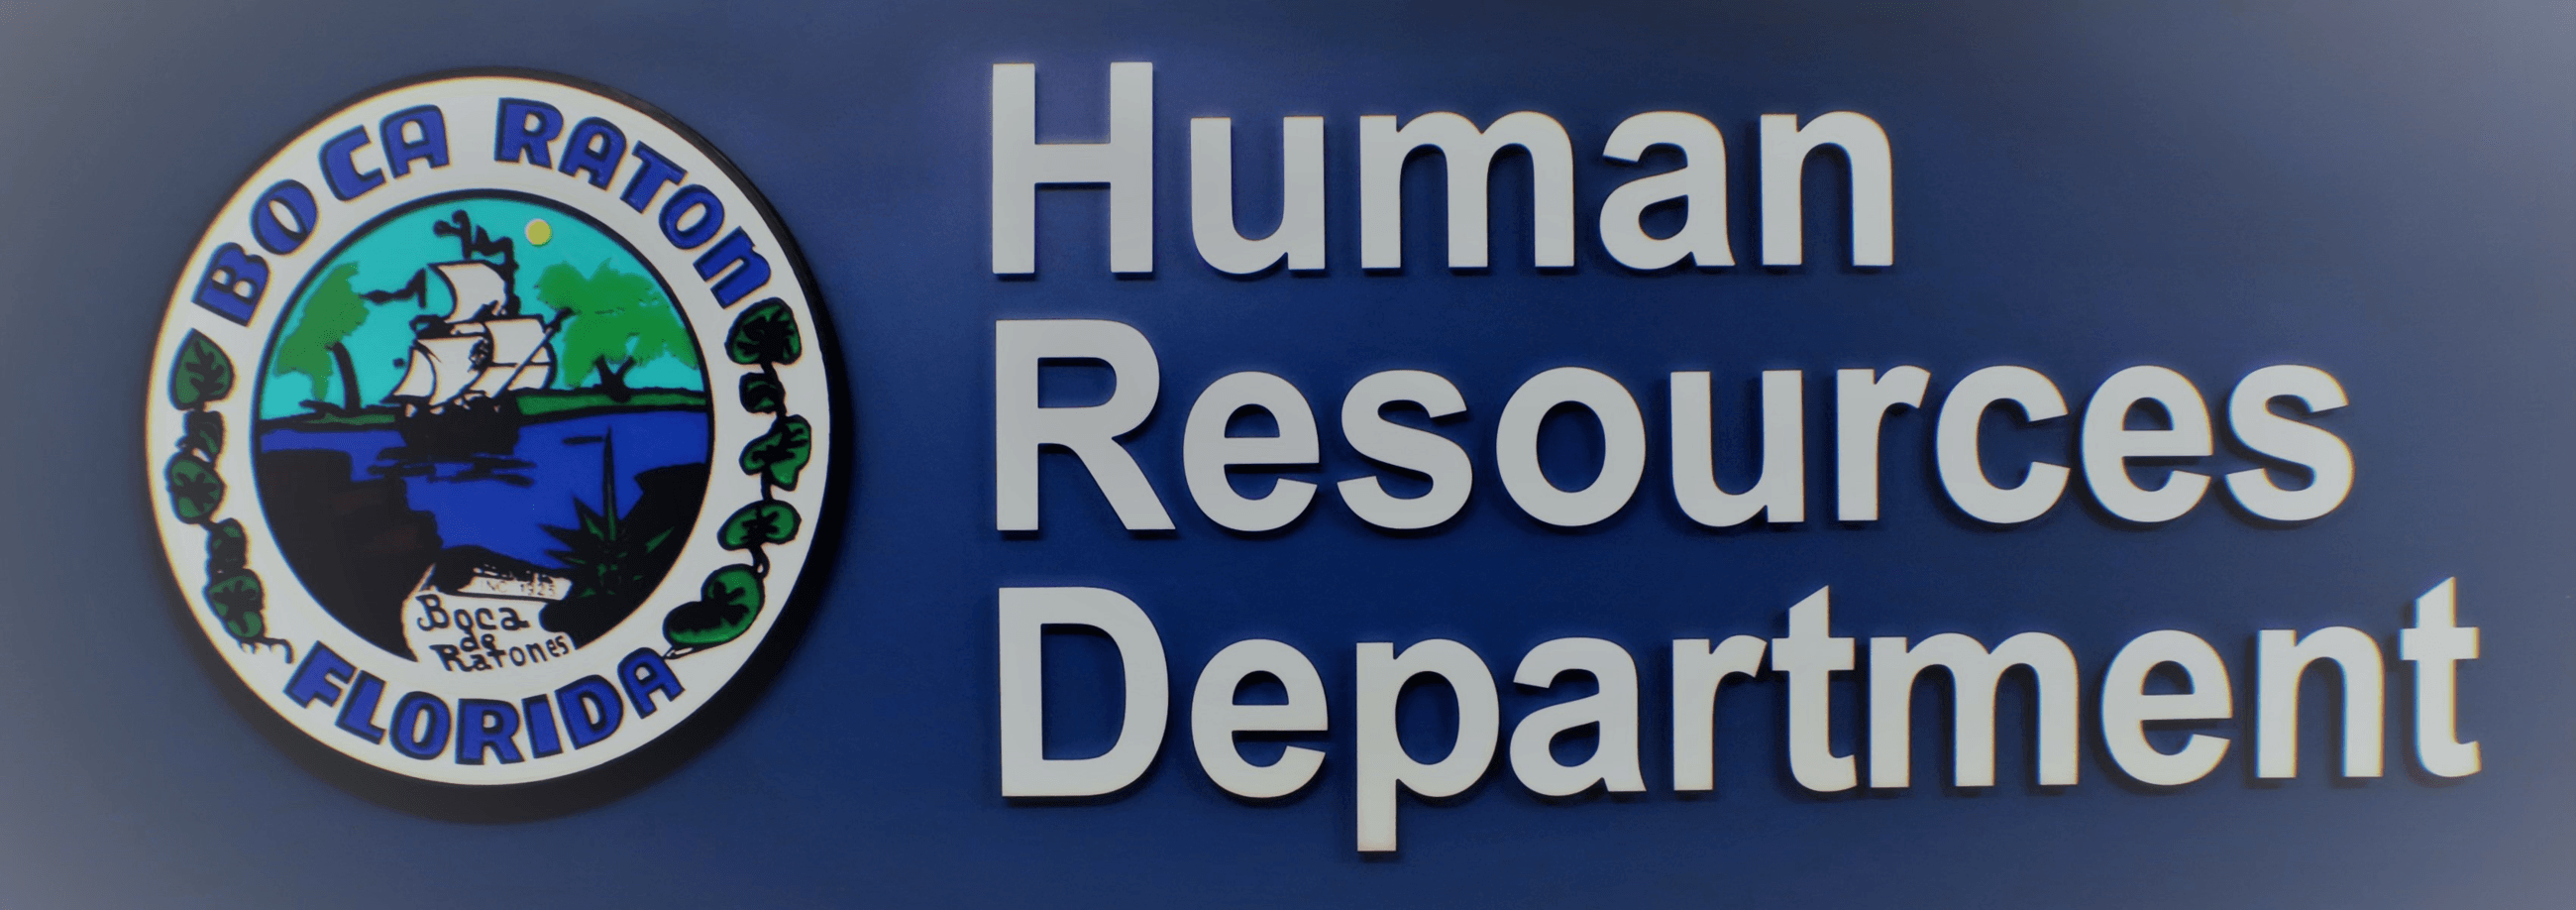 Human Resources Sign_2